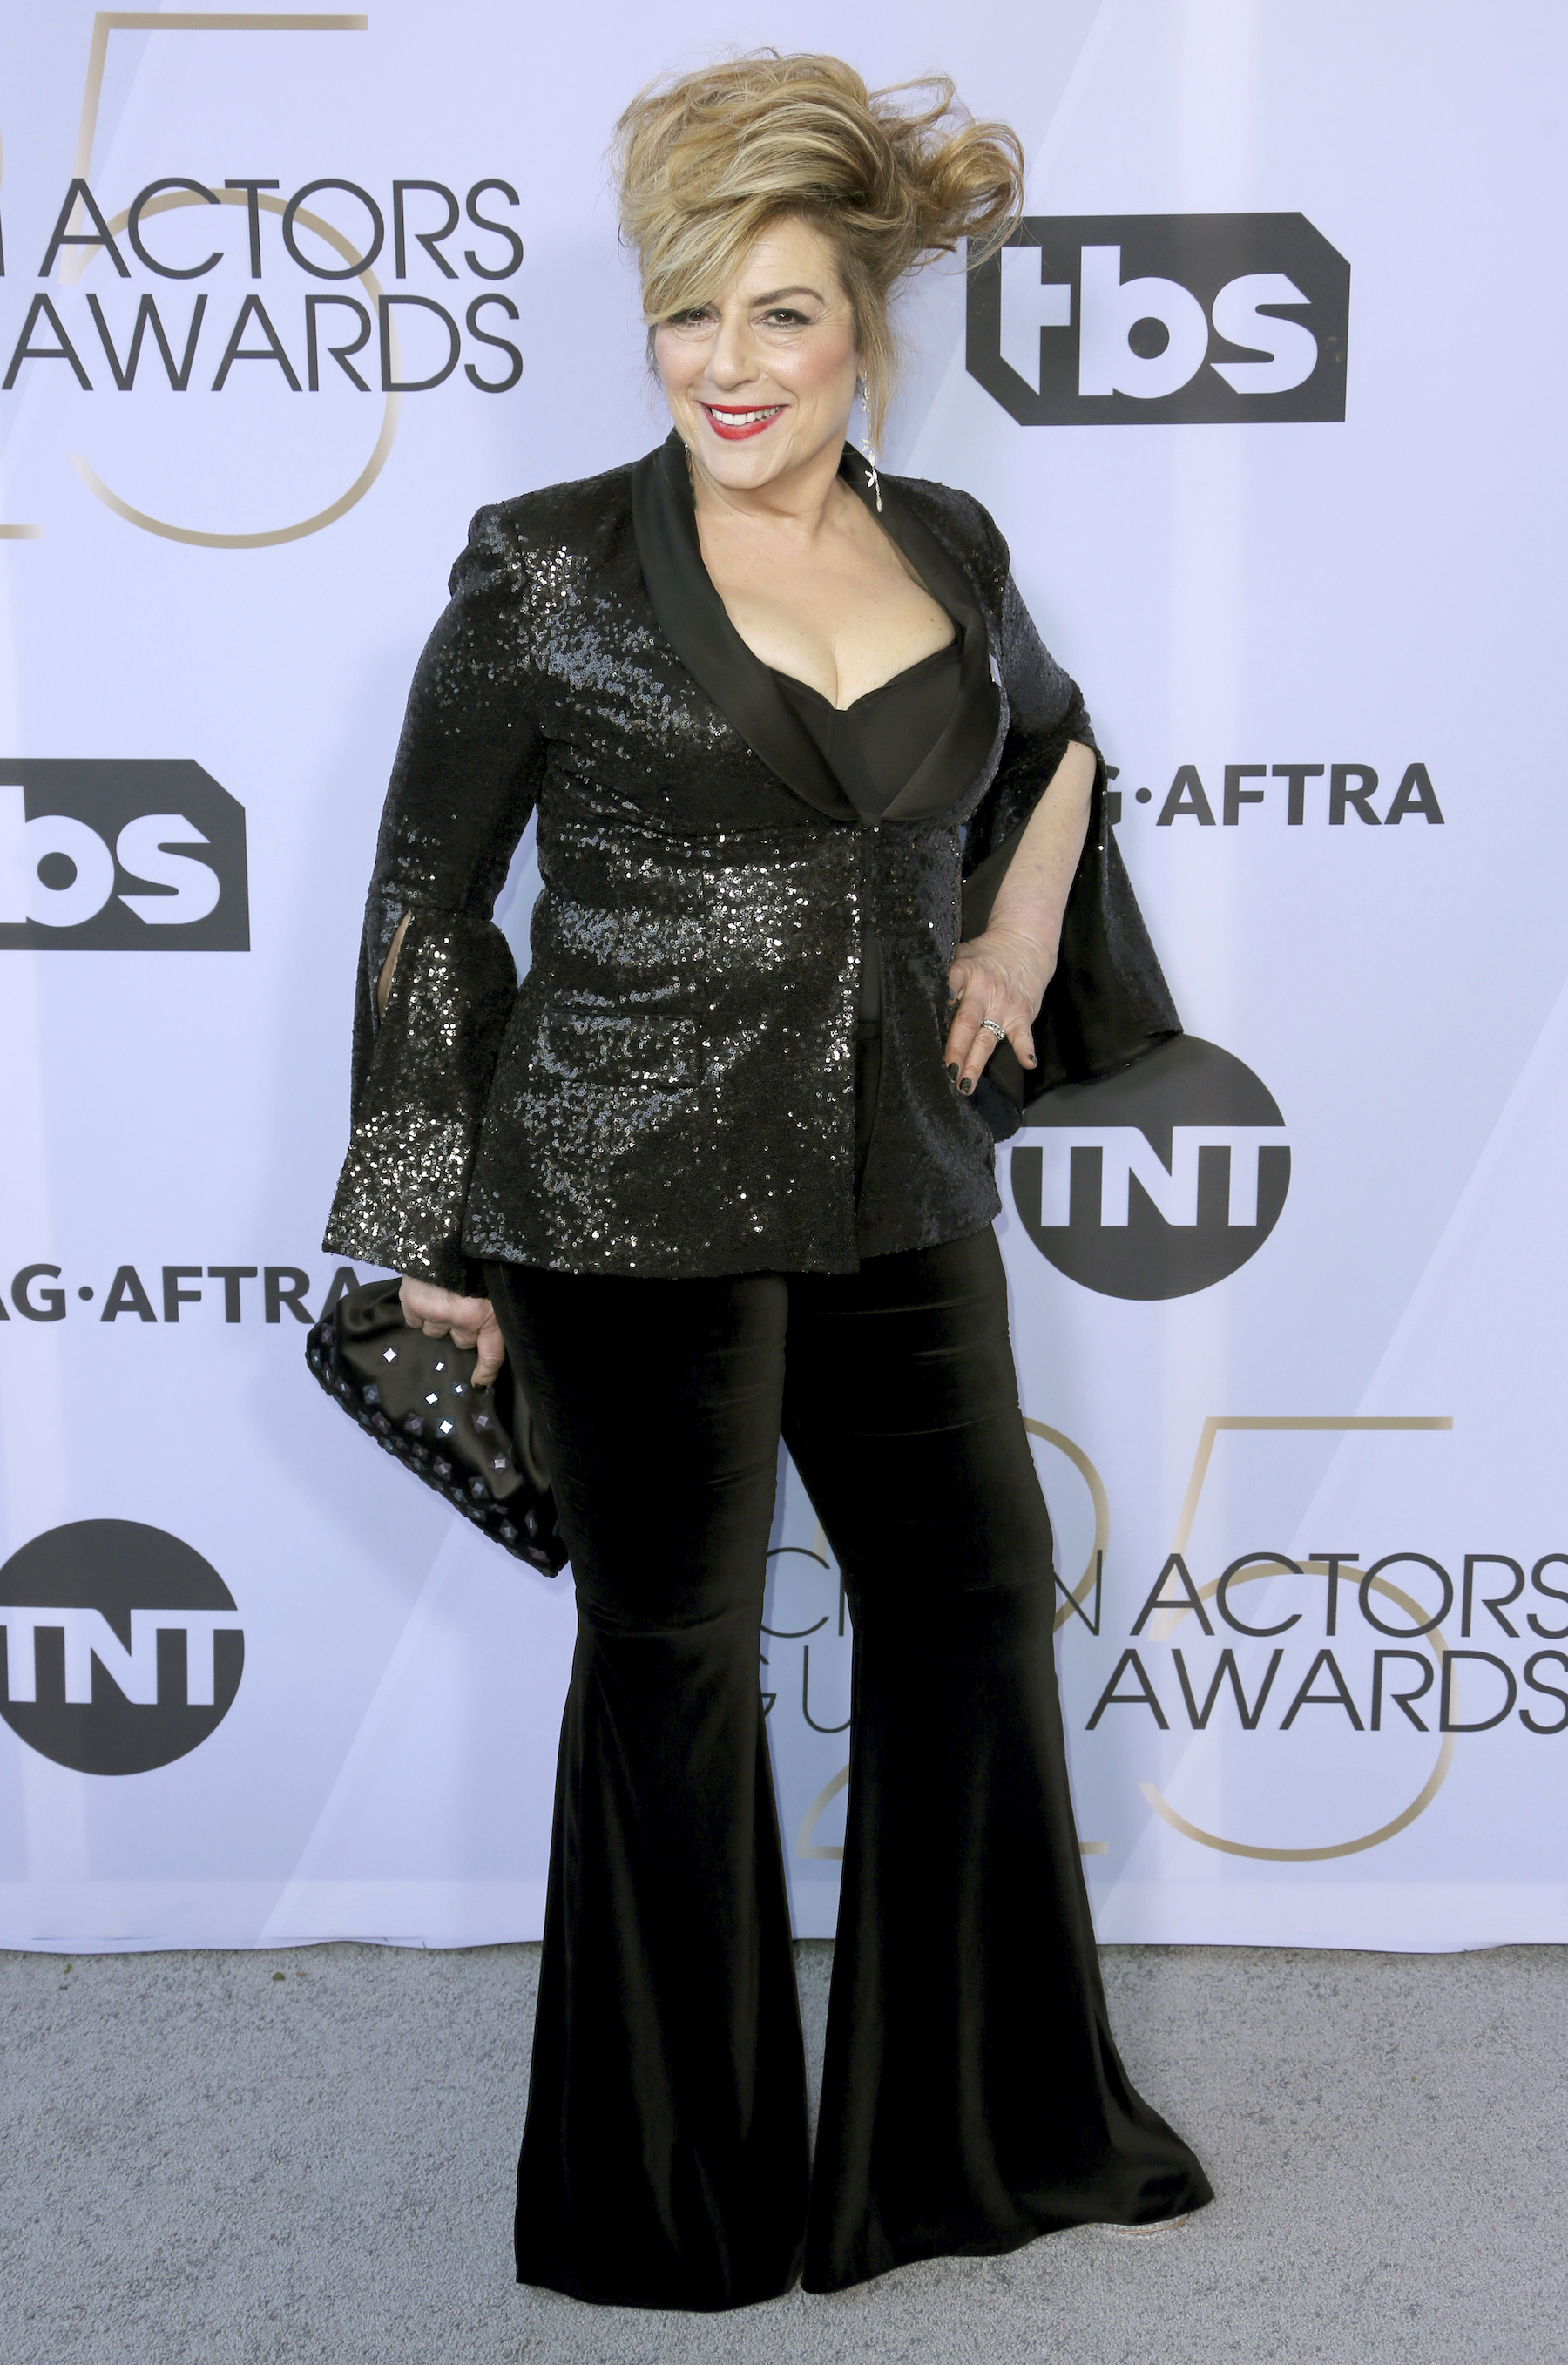 "<div class=""meta image-caption""><div class=""origin-logo origin-image ap""><span>AP</span></div><span class=""caption-text"">Caroline Aaron arrives at the 25th annual Screen Actors Guild Awards at the Shrine Auditorium & Expo Hall on Sunday, Jan. 27, 2019, in Los Angeles. (Willy Sanjuan/Invision/AP)</span></div>"